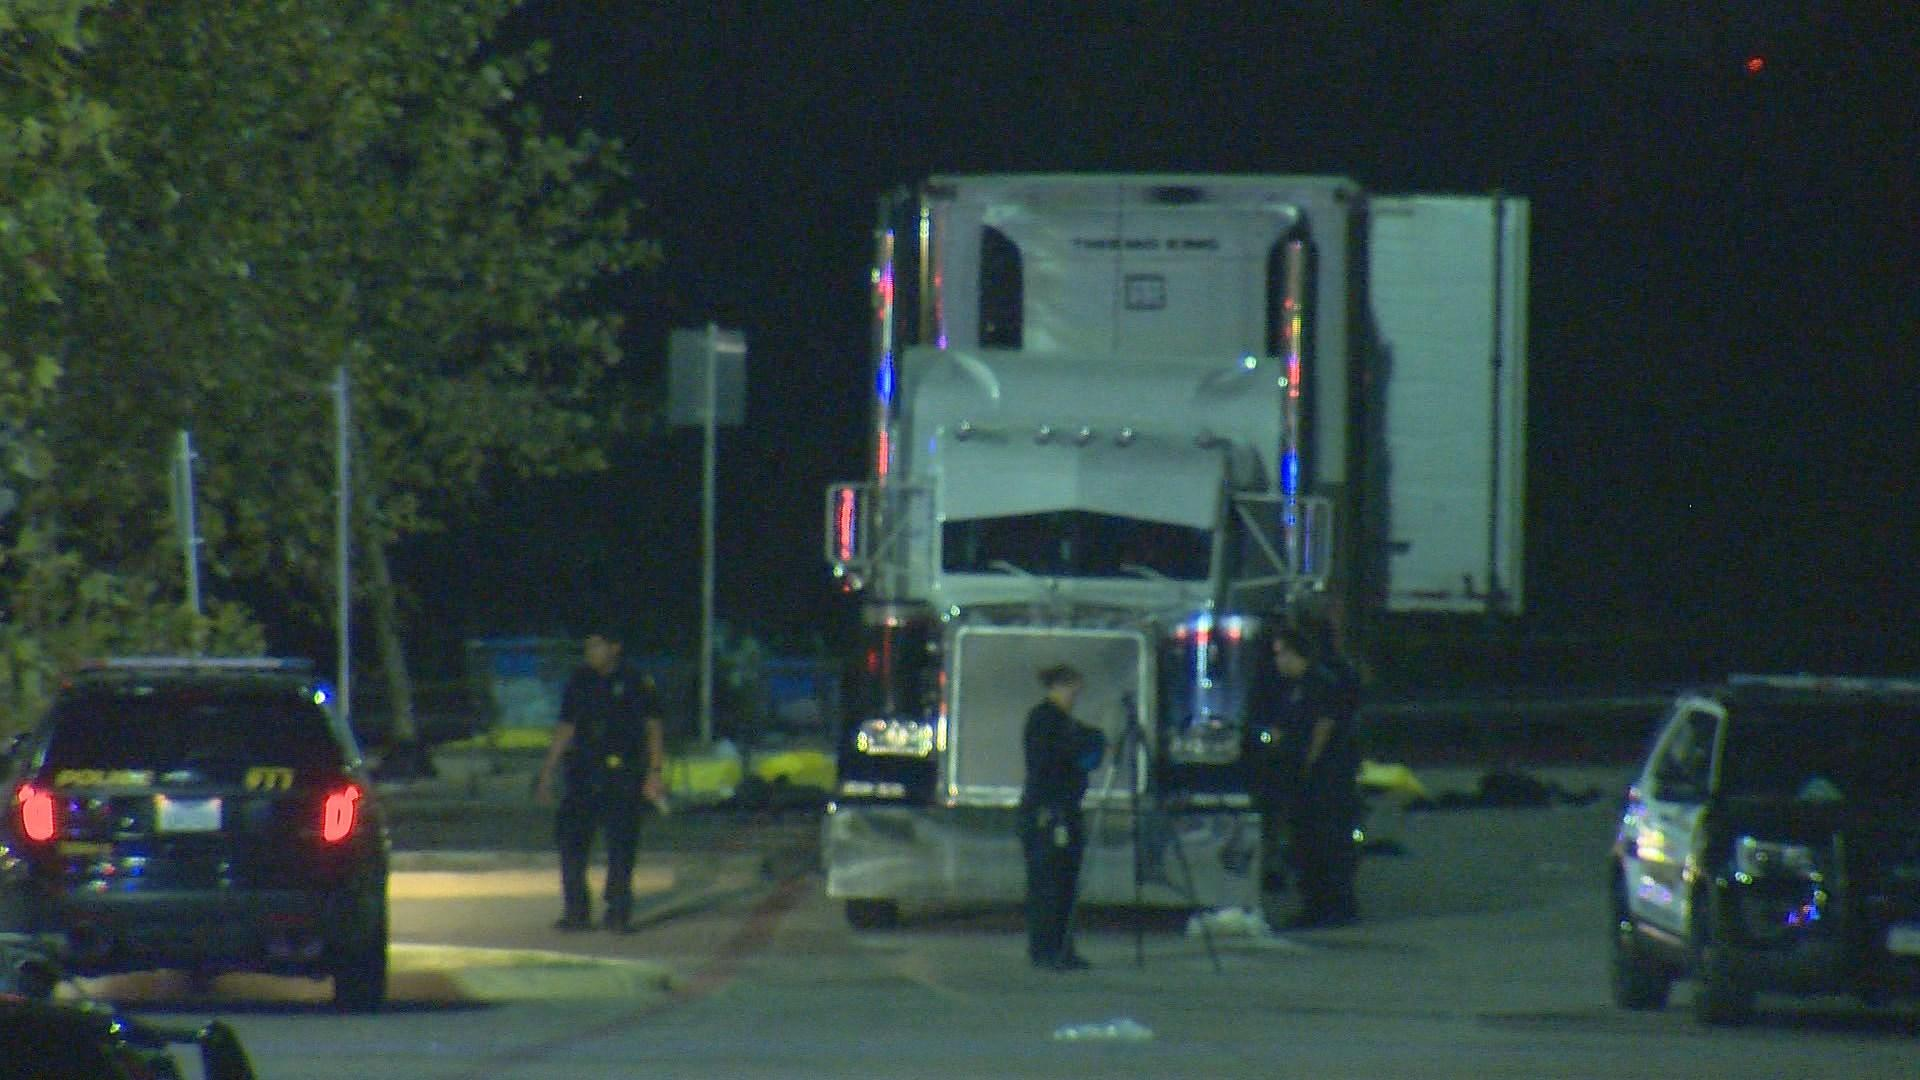 Ten Dead In Apparent Human Smuggling Tragedy In San